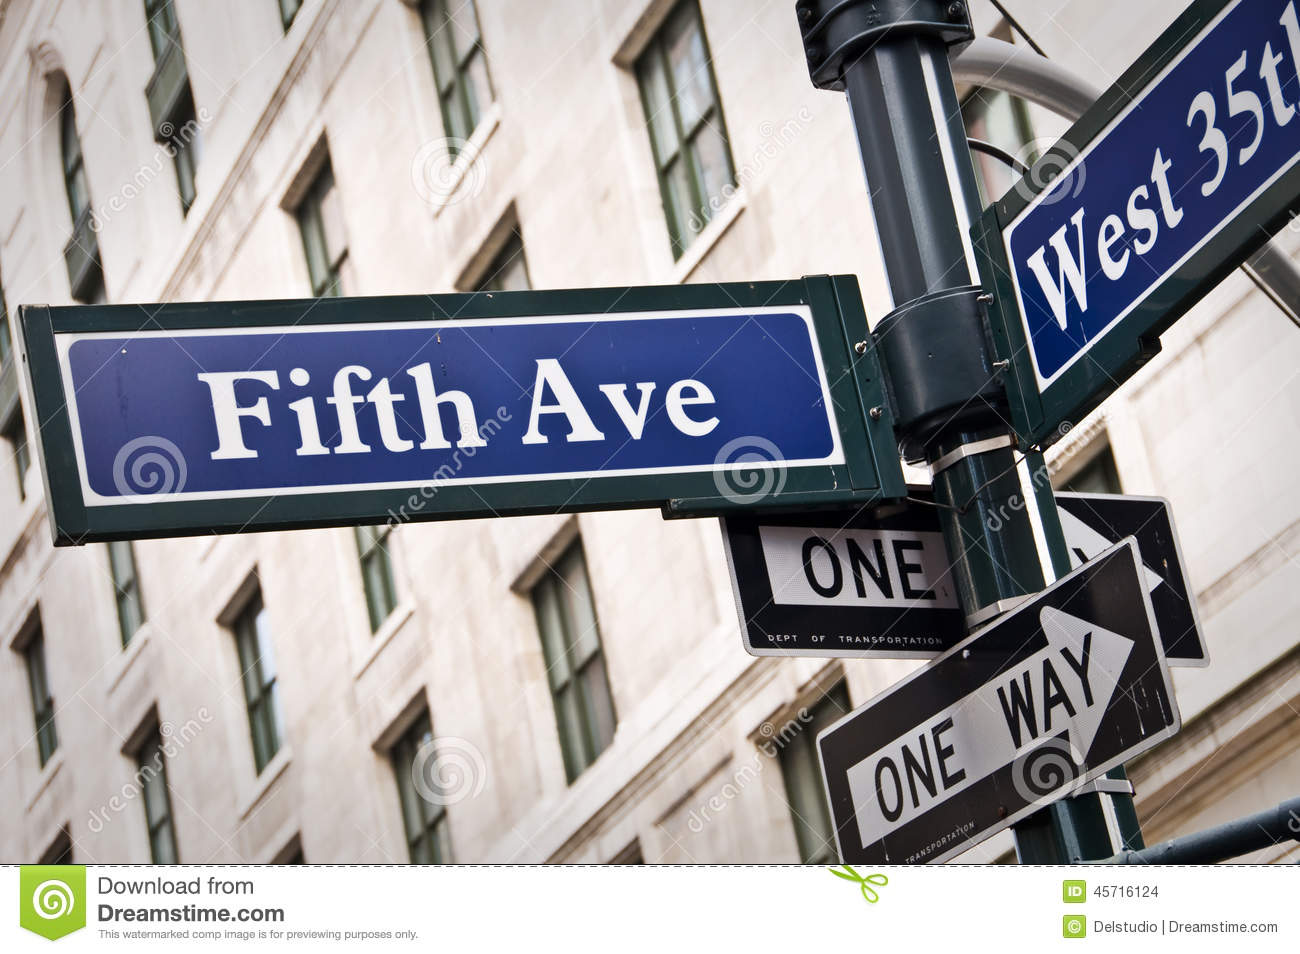 About Saks Fifth Avenue Here are the most current Saks Fifth Avenue coupon codes and promotions for November Whether you're shopping for a new designer handbag, brand name apparel, dress shoes, beauty products or home decor, you can save anywhere from 10% to 70% off!